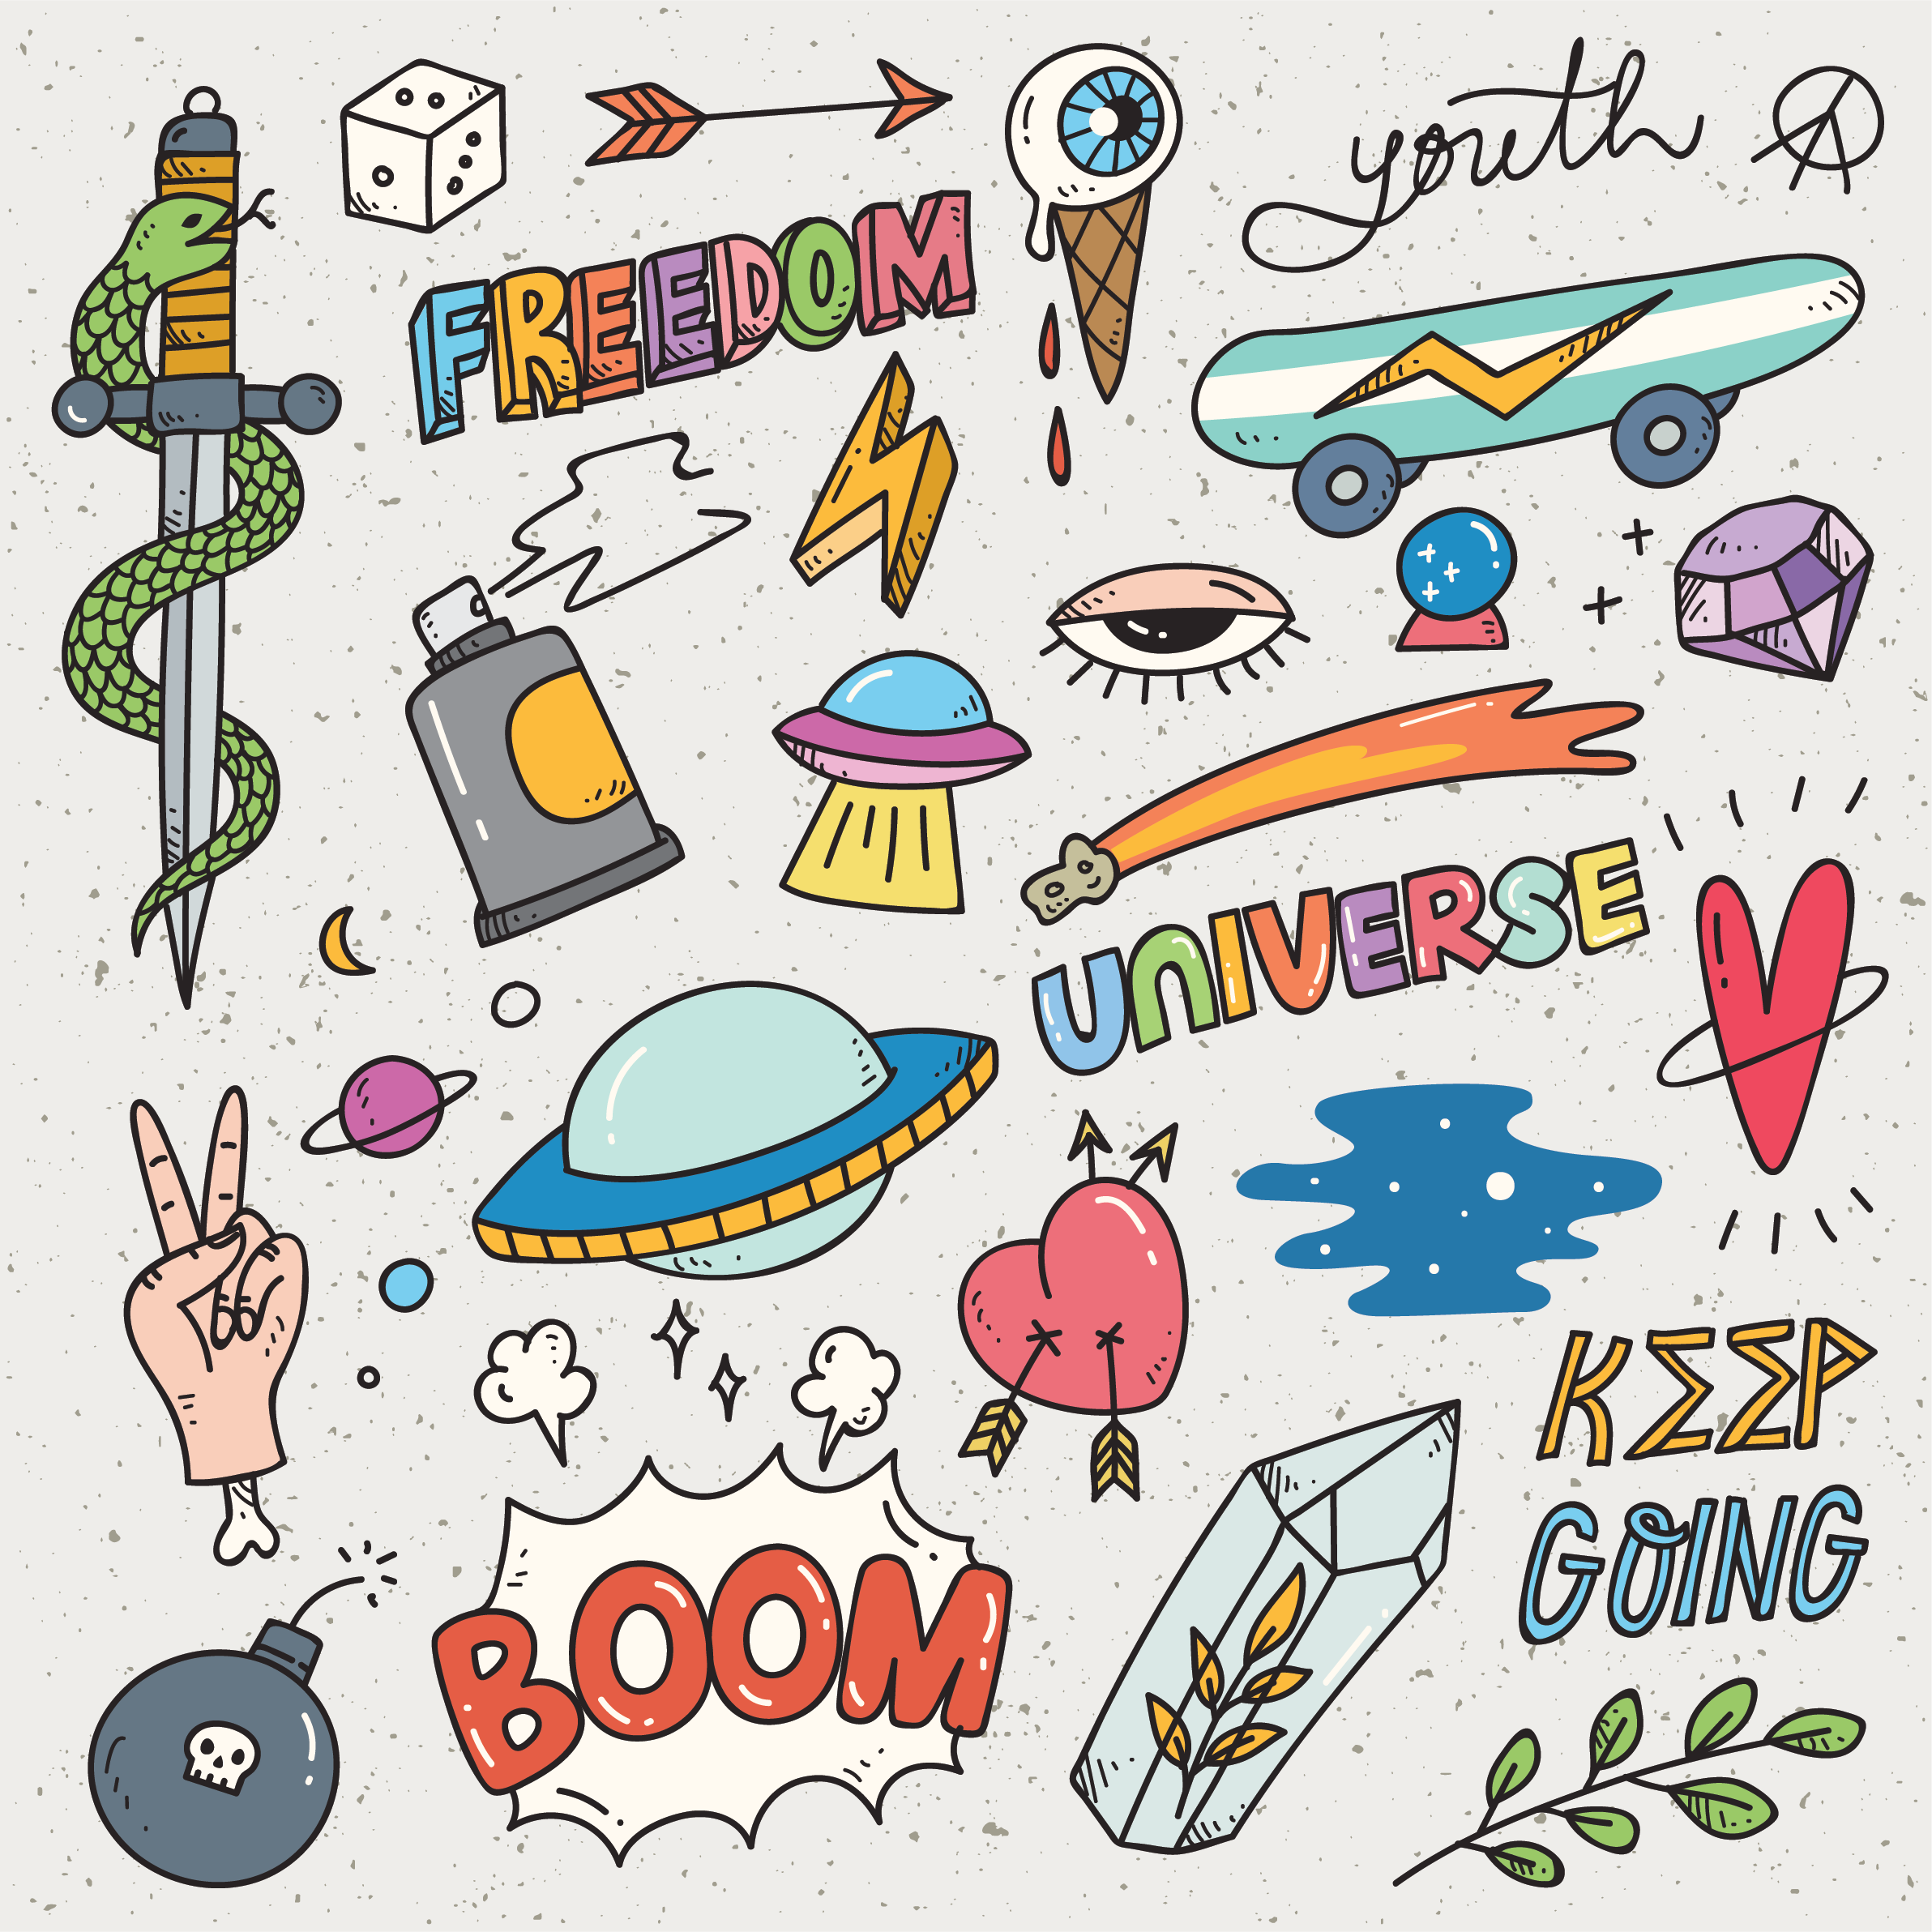 Rad Girly Grafitti Stickers Buy 2 Get 1 Free Buy 2 Of Our Sticker Sets And Get A 3rd Sticker Set Of Your Choosing F Graffiti Doodles Sticker Graffiti Doodles [ 2384 x 2384 Pixel ]